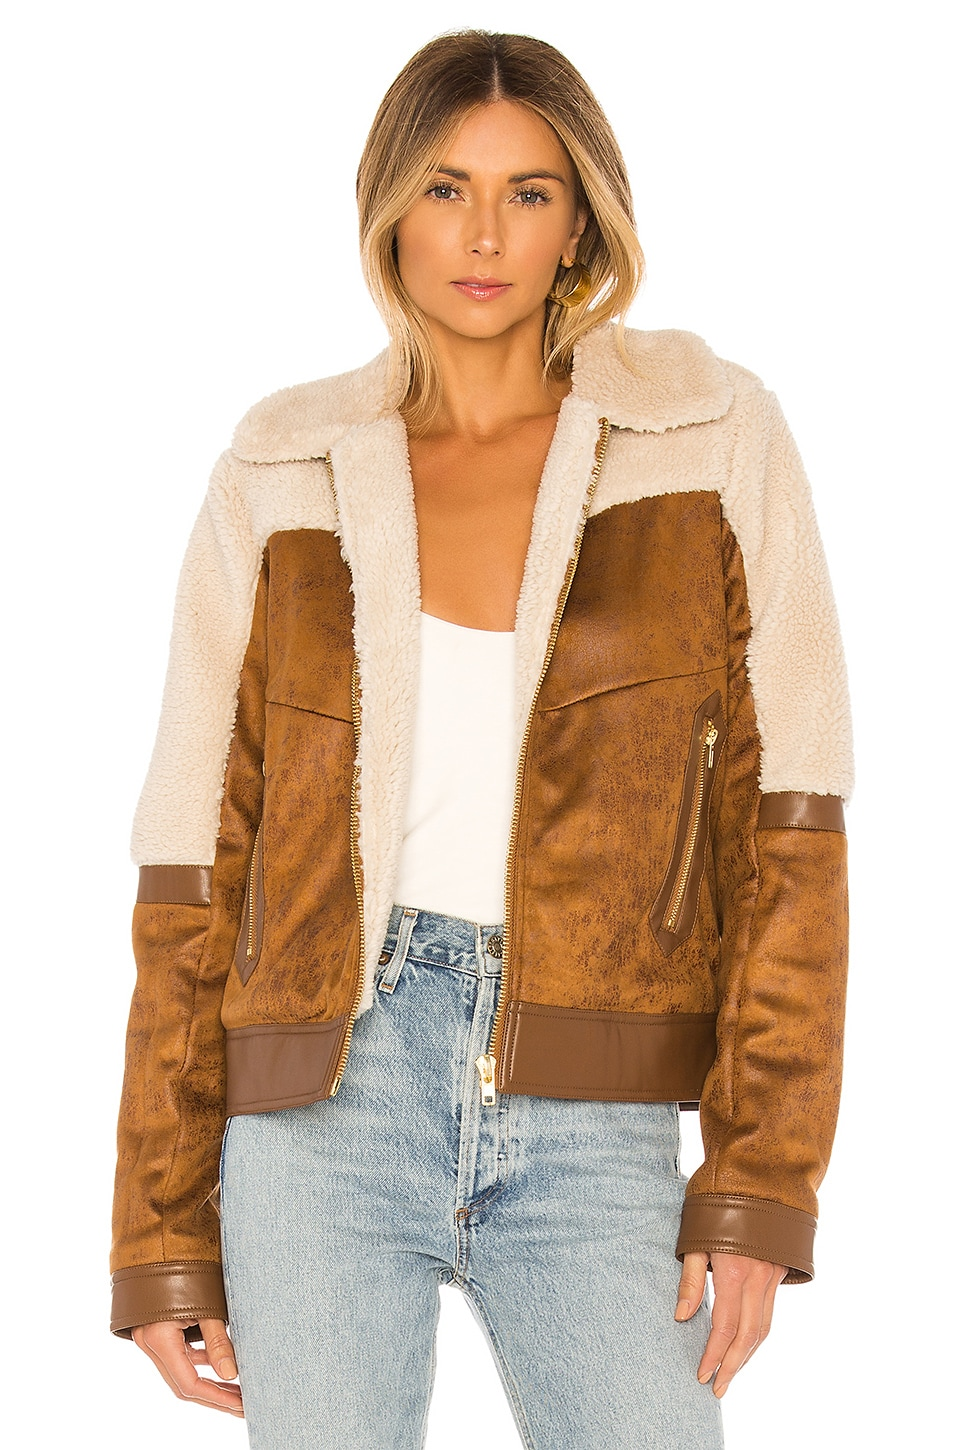 MOTHER Faux Fur & Vegan Leather The Trapper Keeper Jacket in Fair Weather